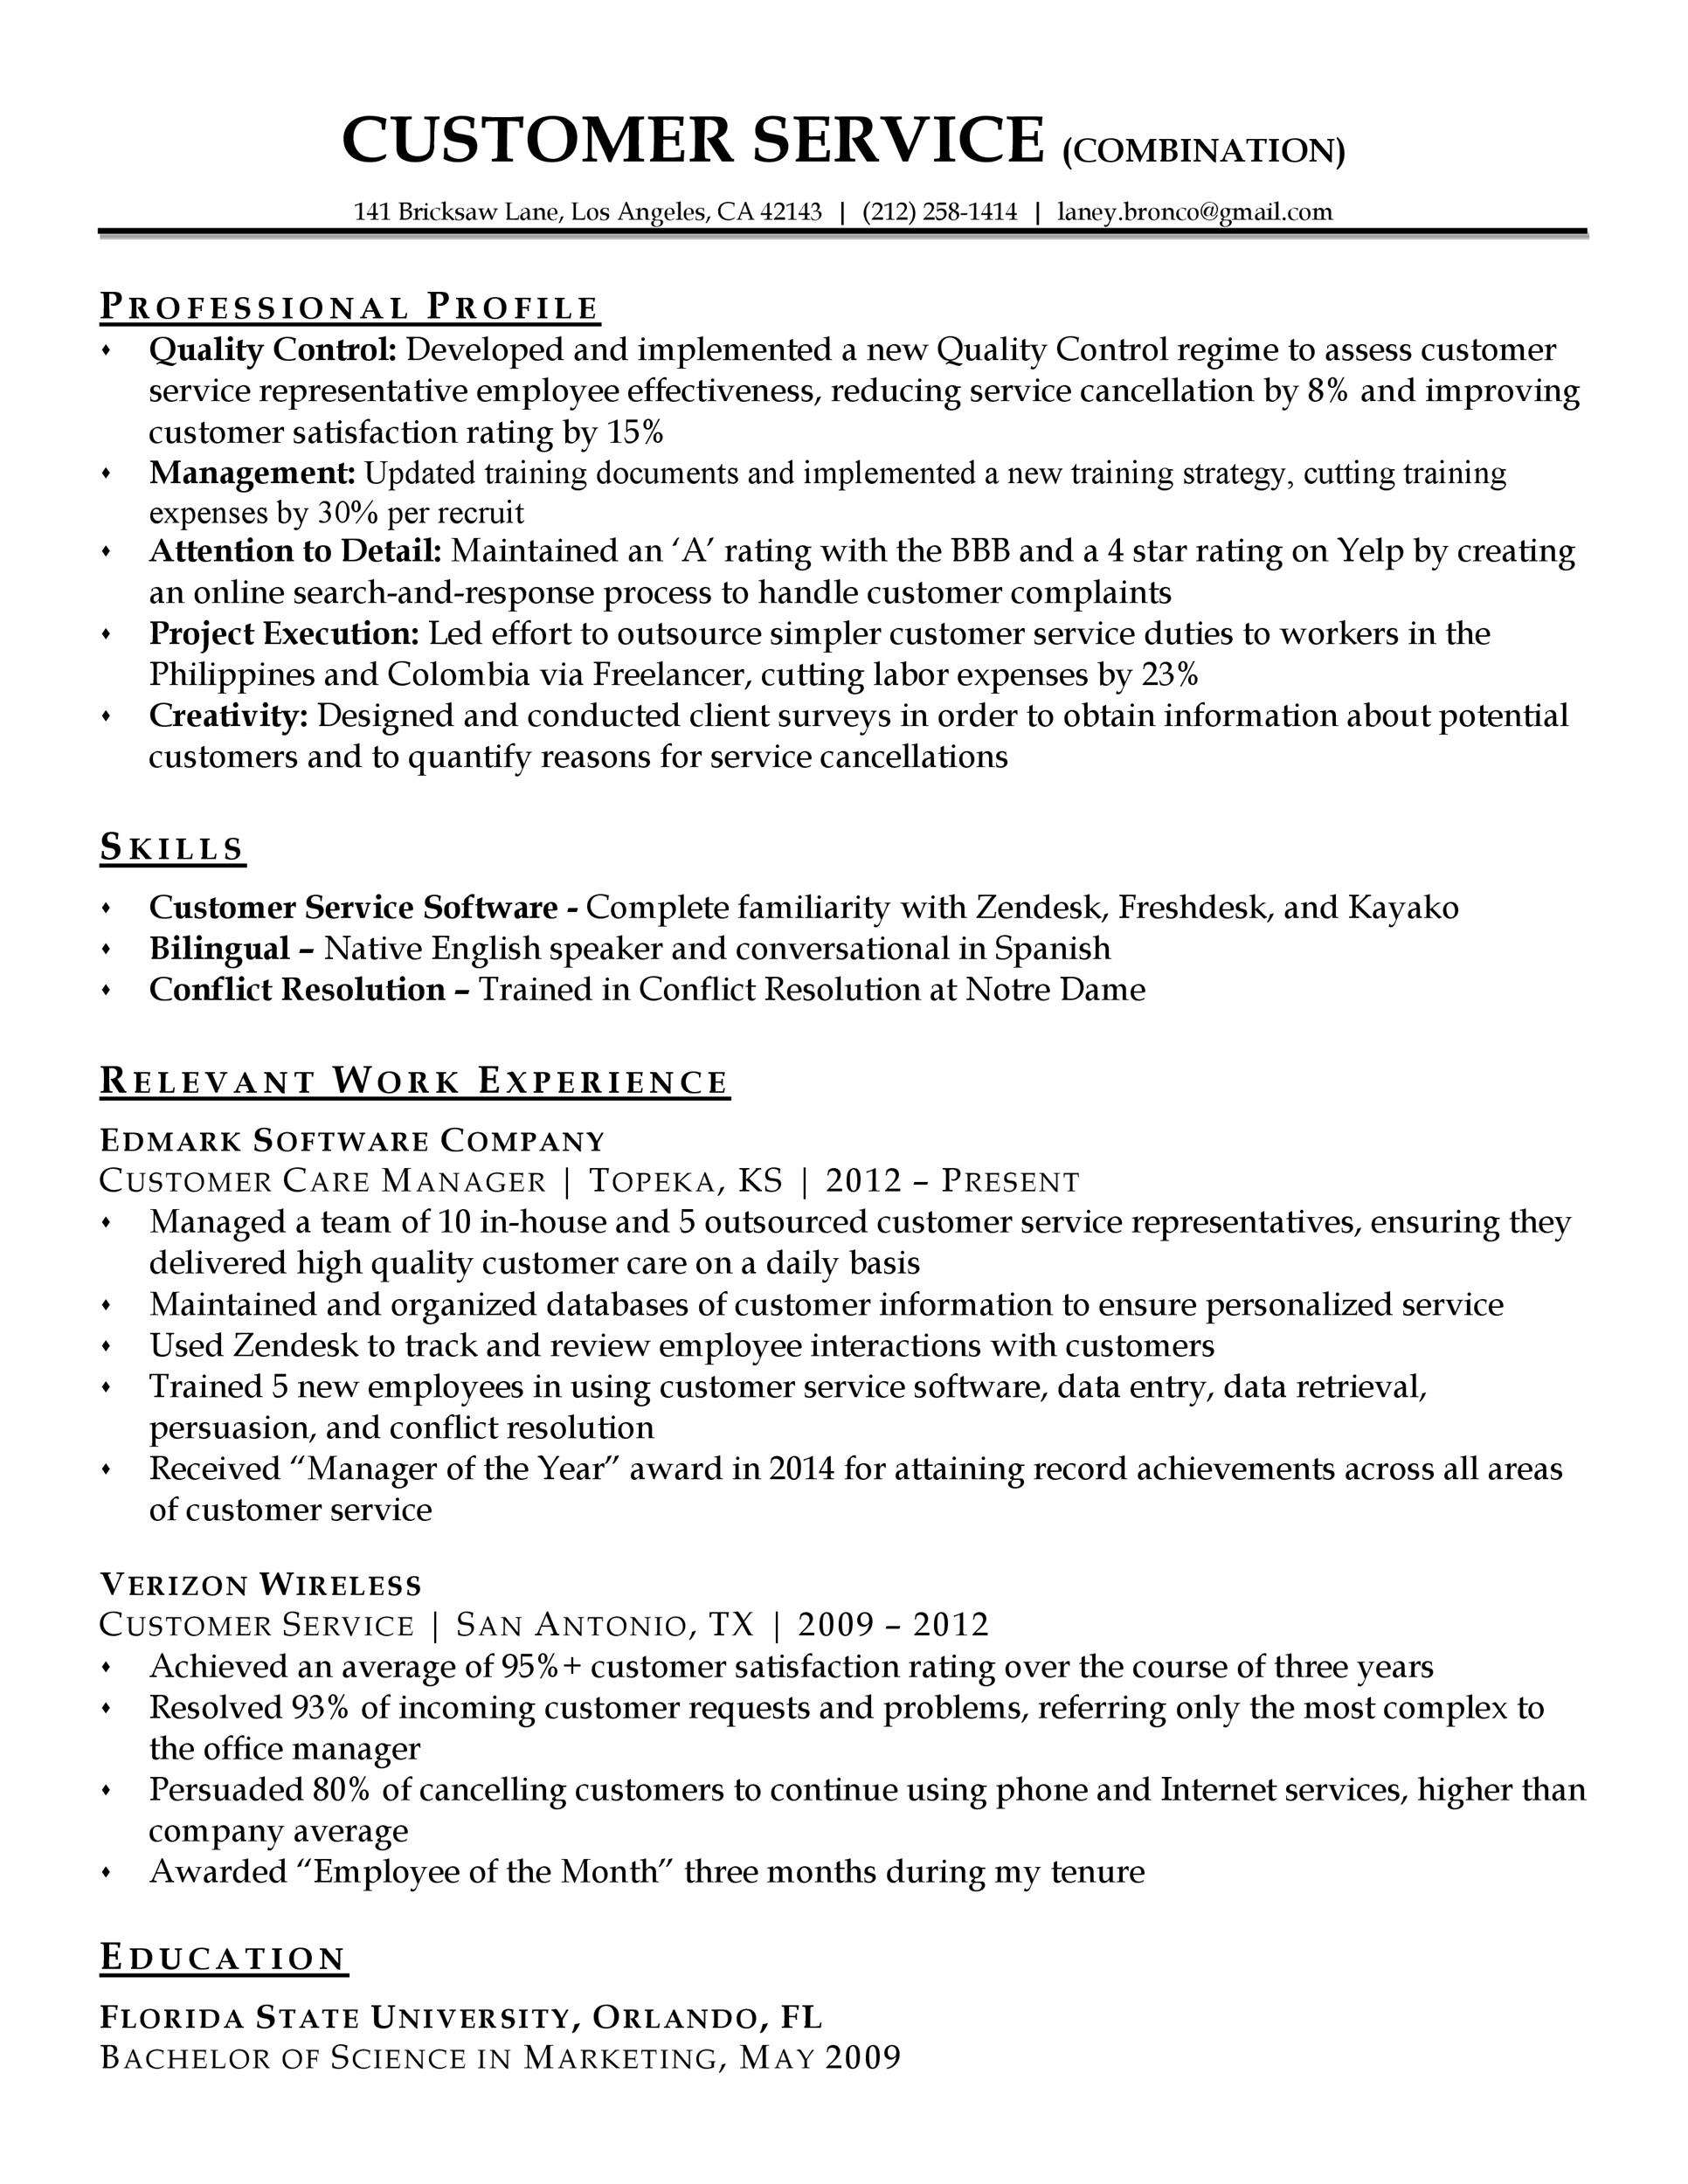 Download Resume Templates | 30 Customer Service Resume Examples Template Lab